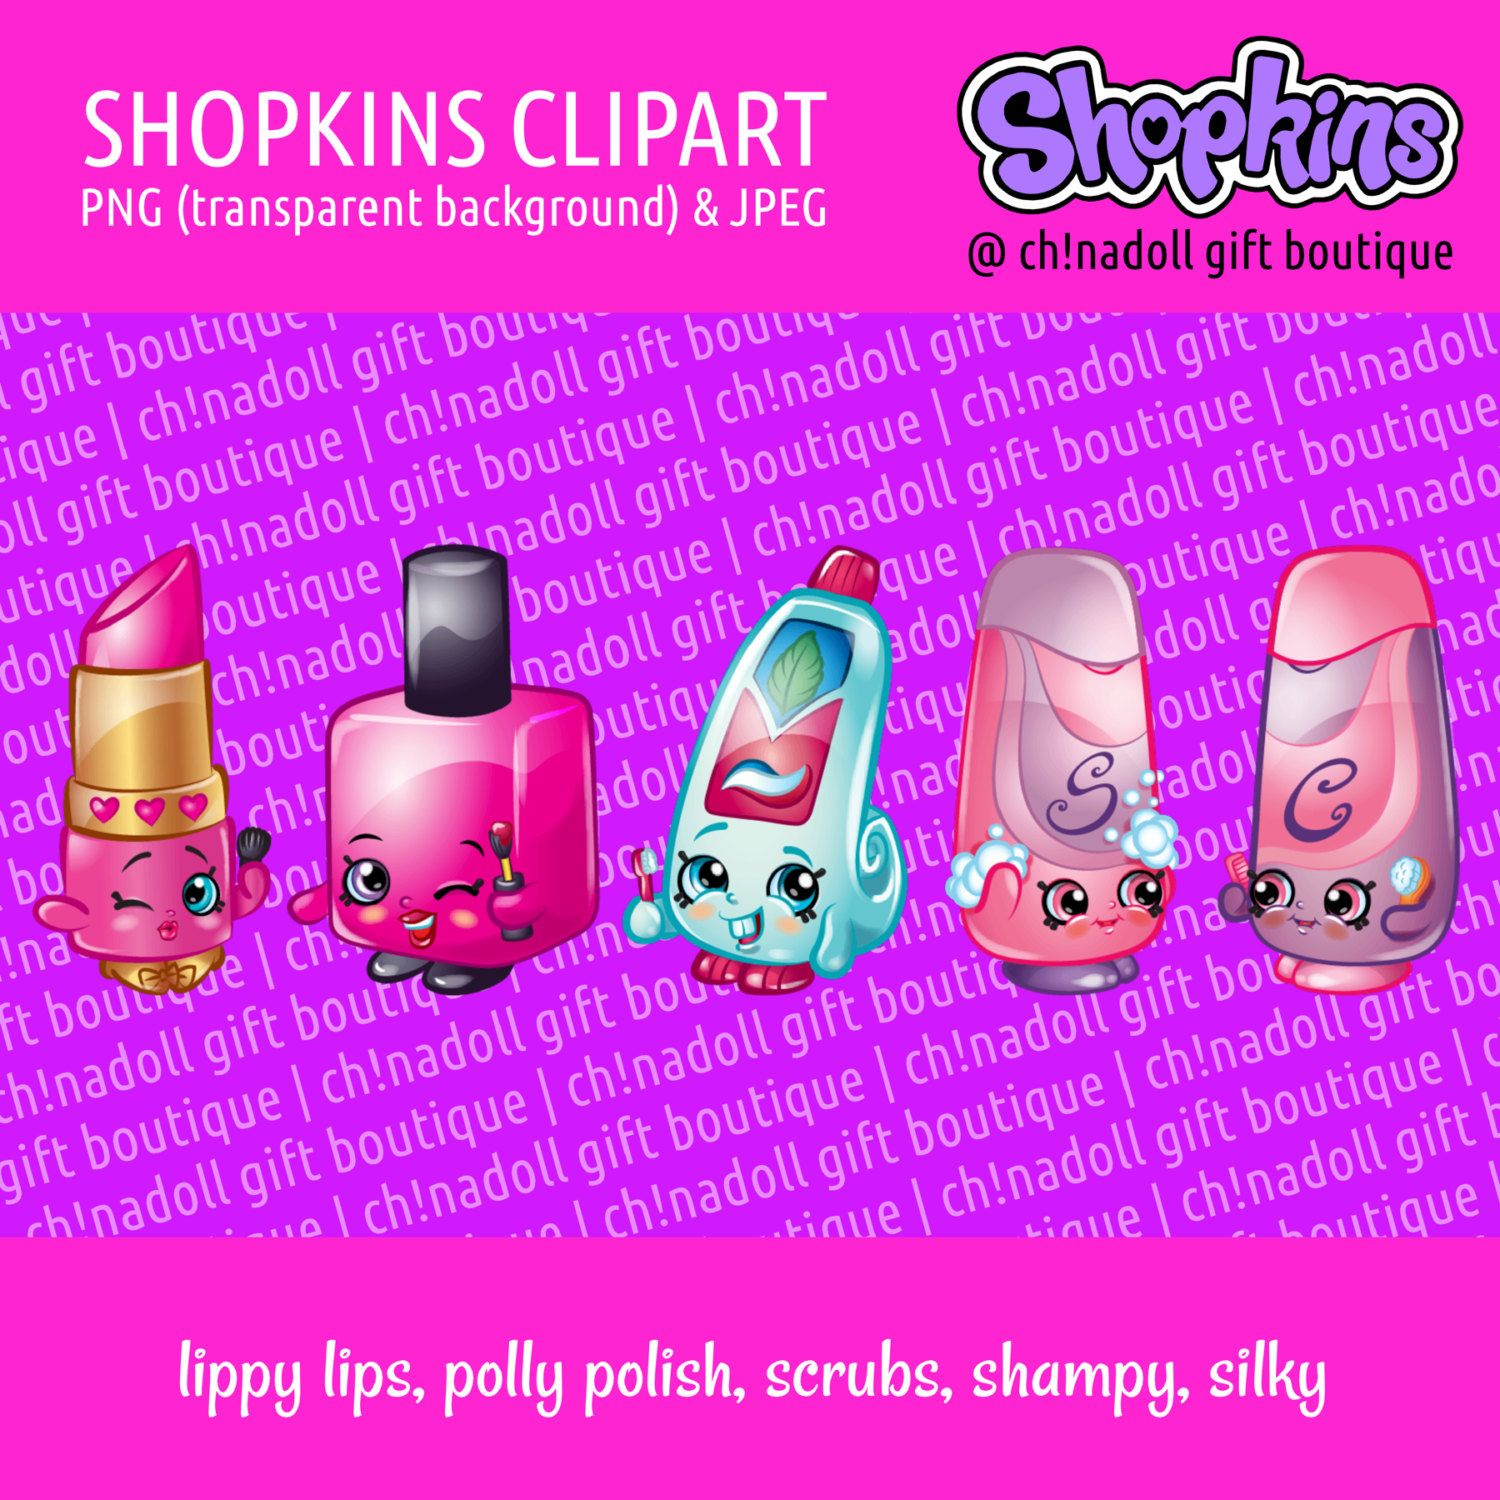 Shopkins coloring pages polly polish - Shopkins Clipart Health And Beauty Lippy Lips Polly Polish Scrubs Shampy Silky Jpeg And Png Instant Download Diy Printable